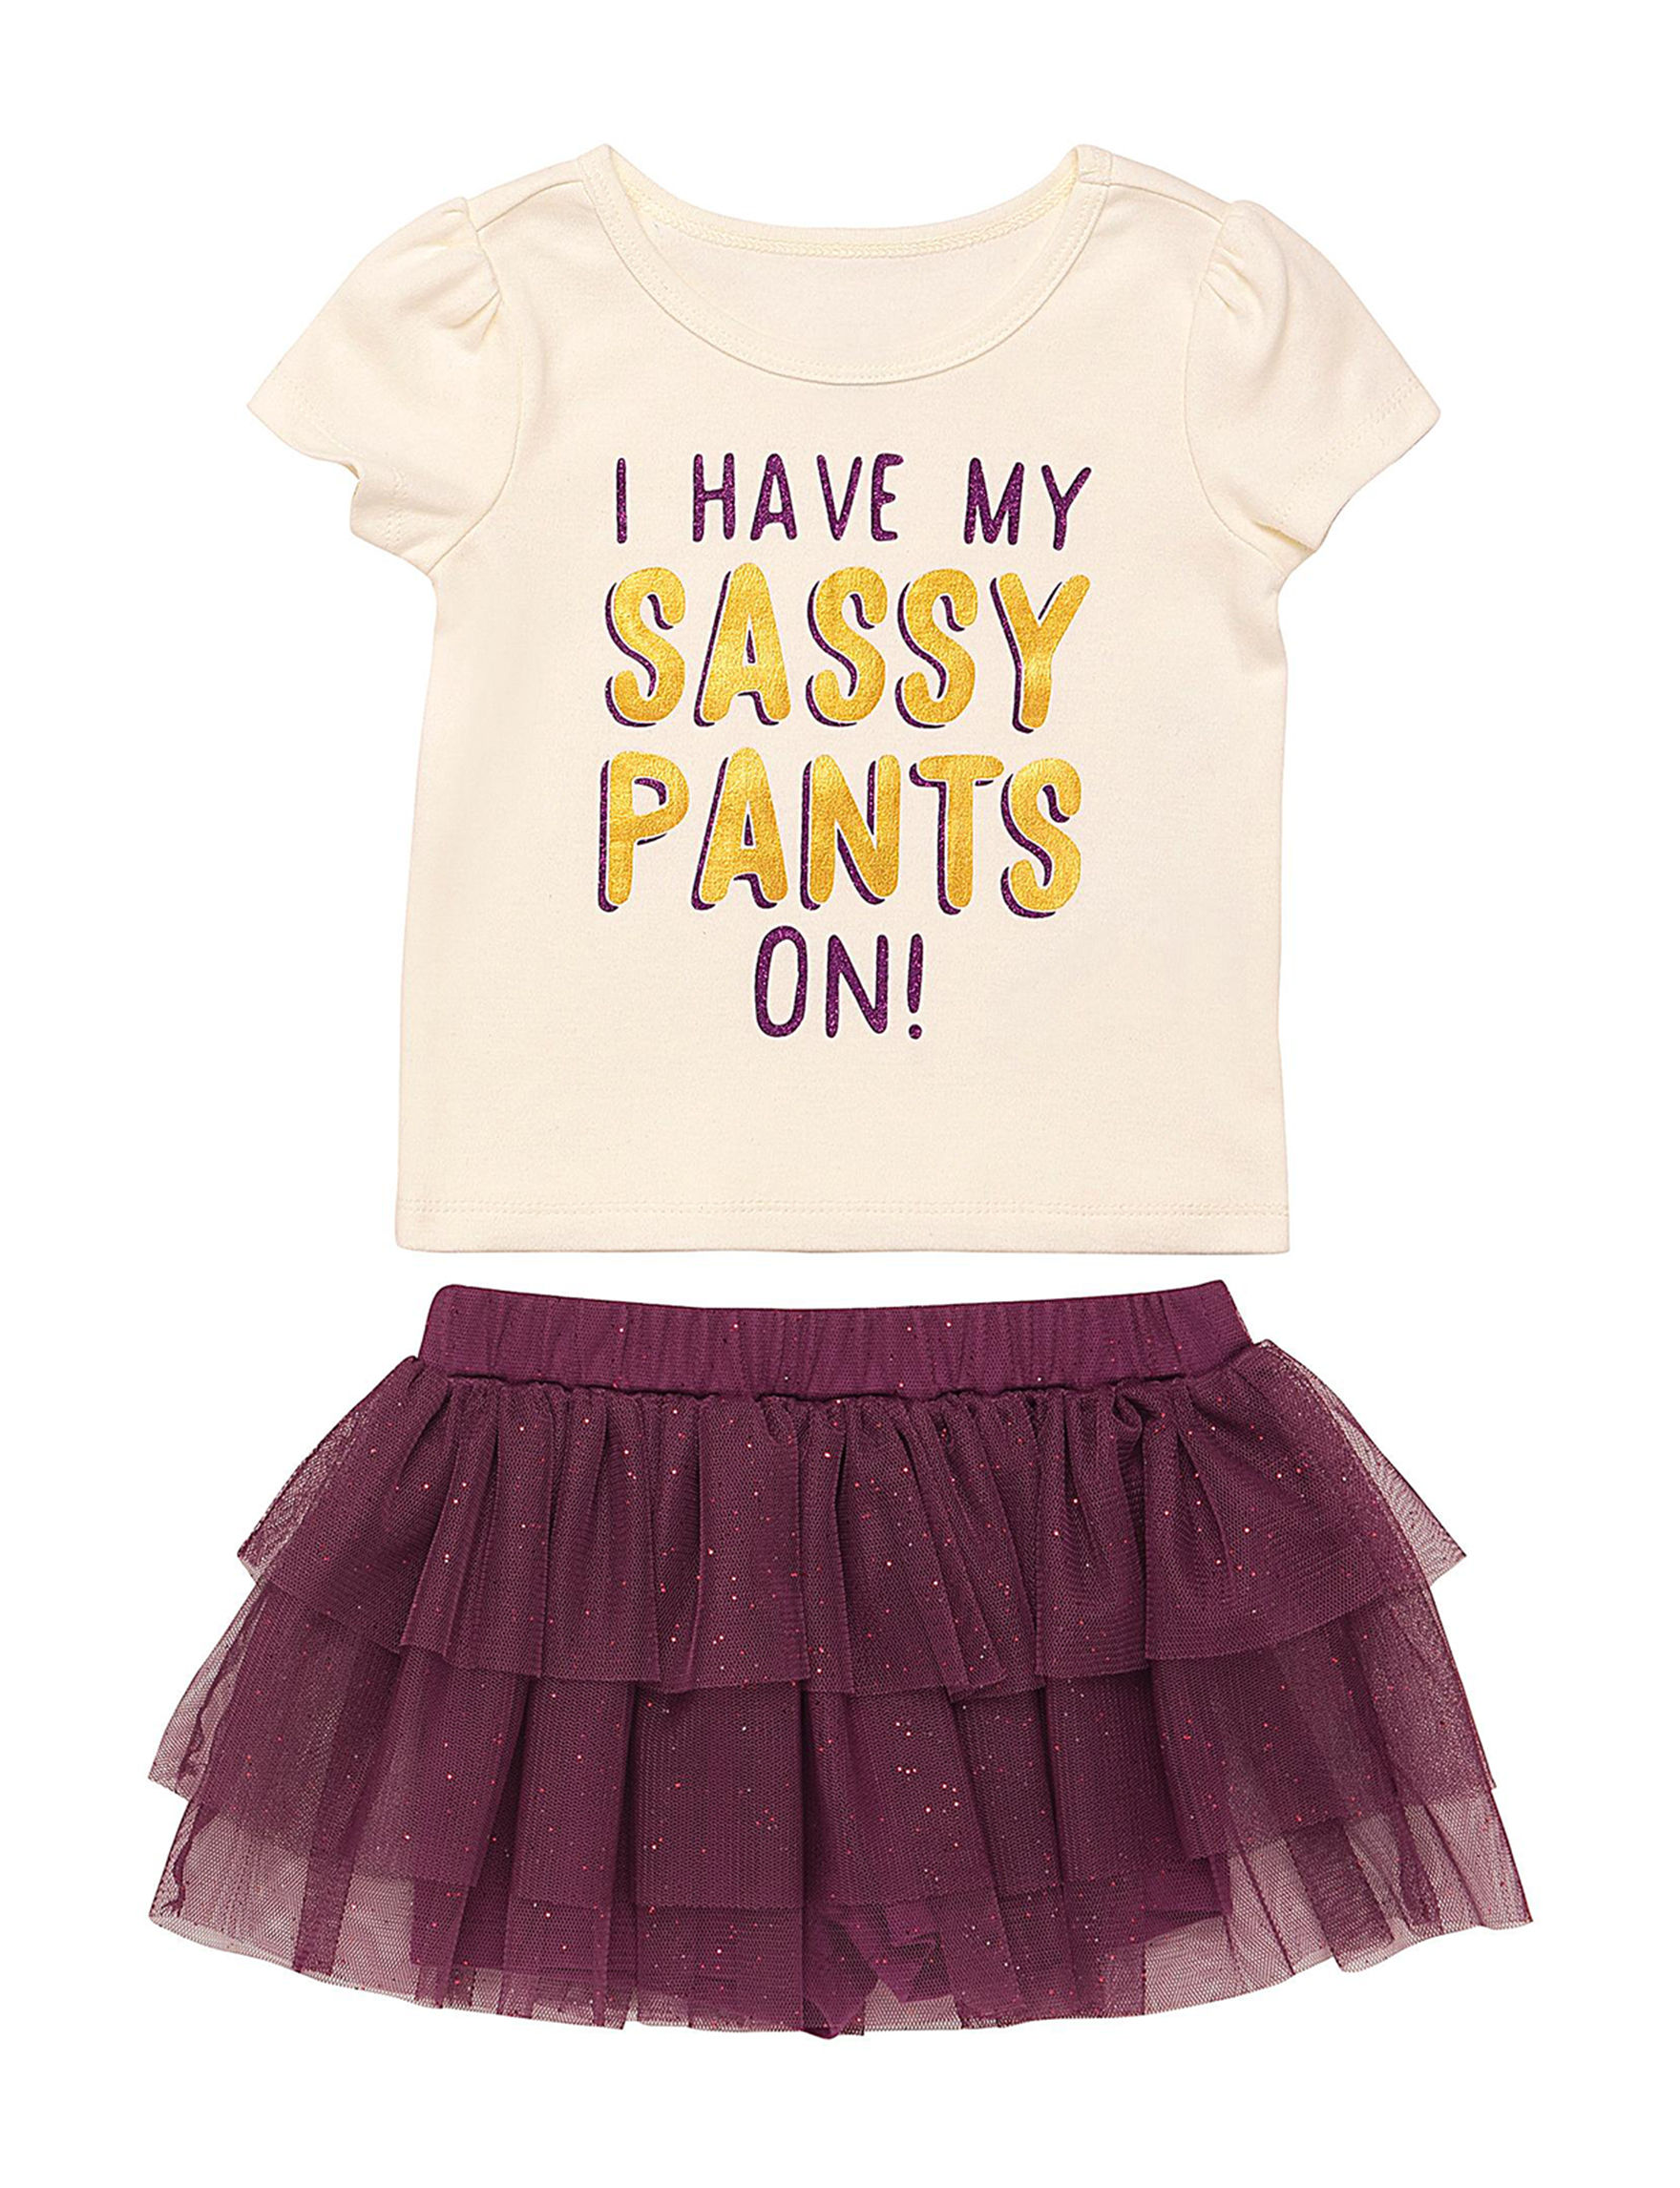 Babies With Attitude Pink / Burgundy